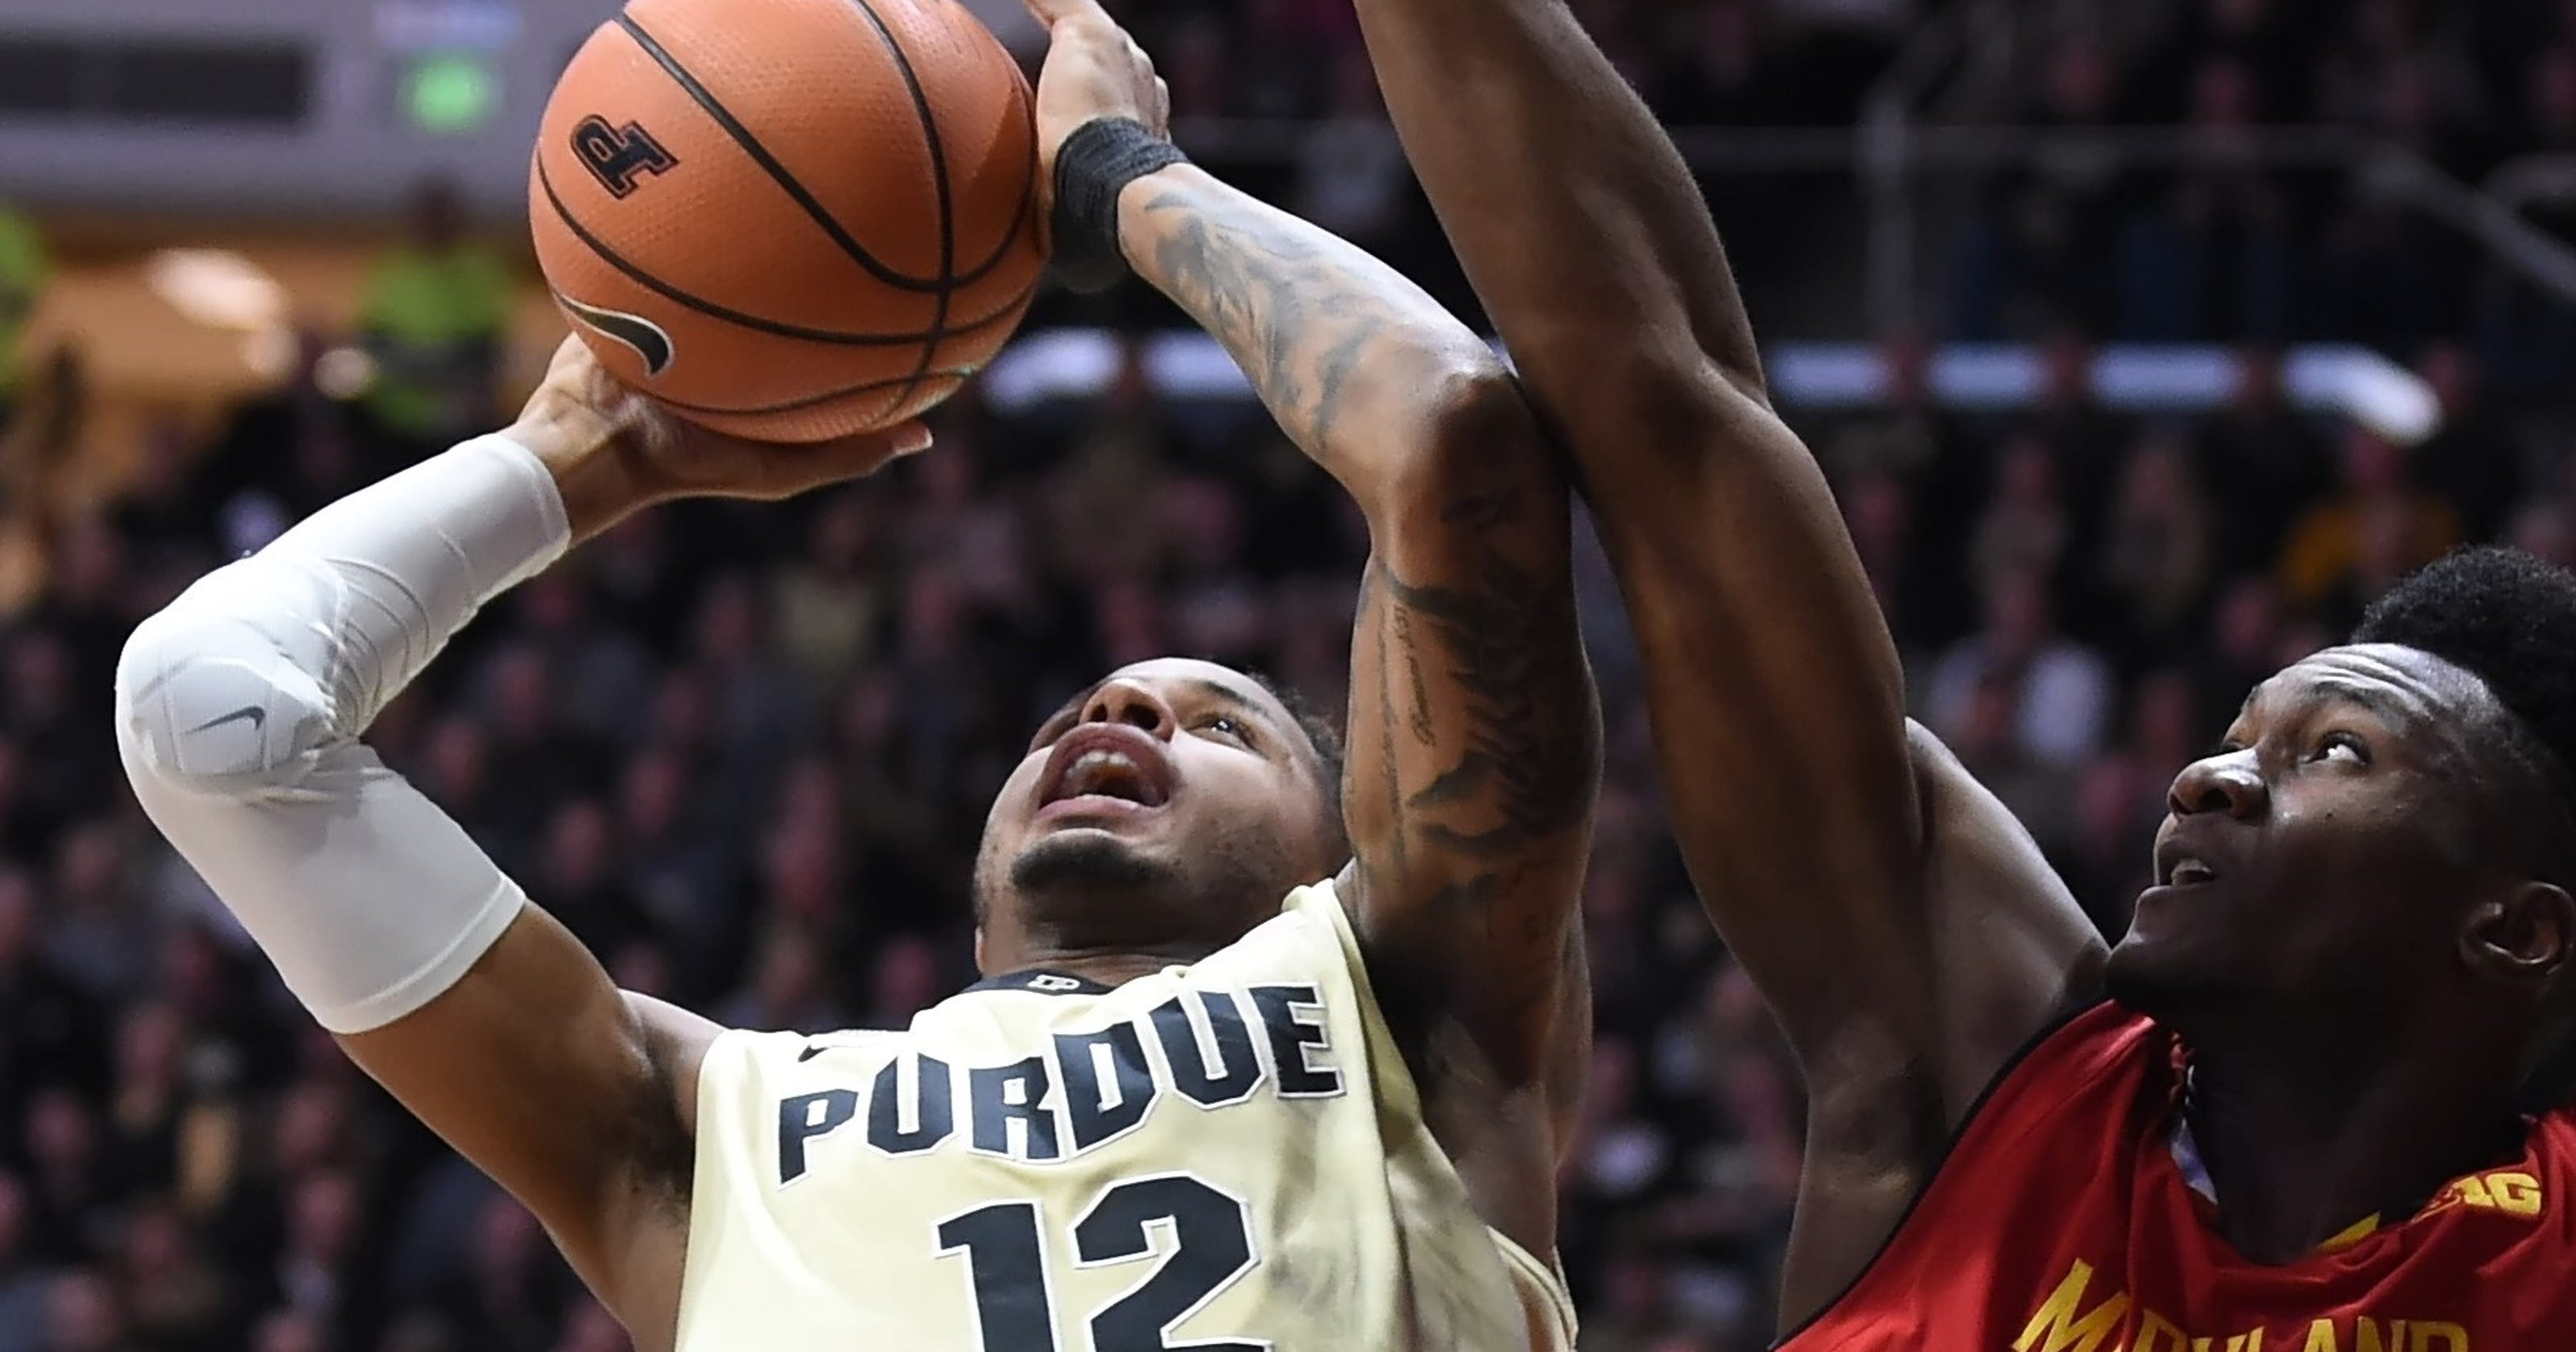 The official 201819 Mens Basketball schedule for the Purdue University Boilermakers